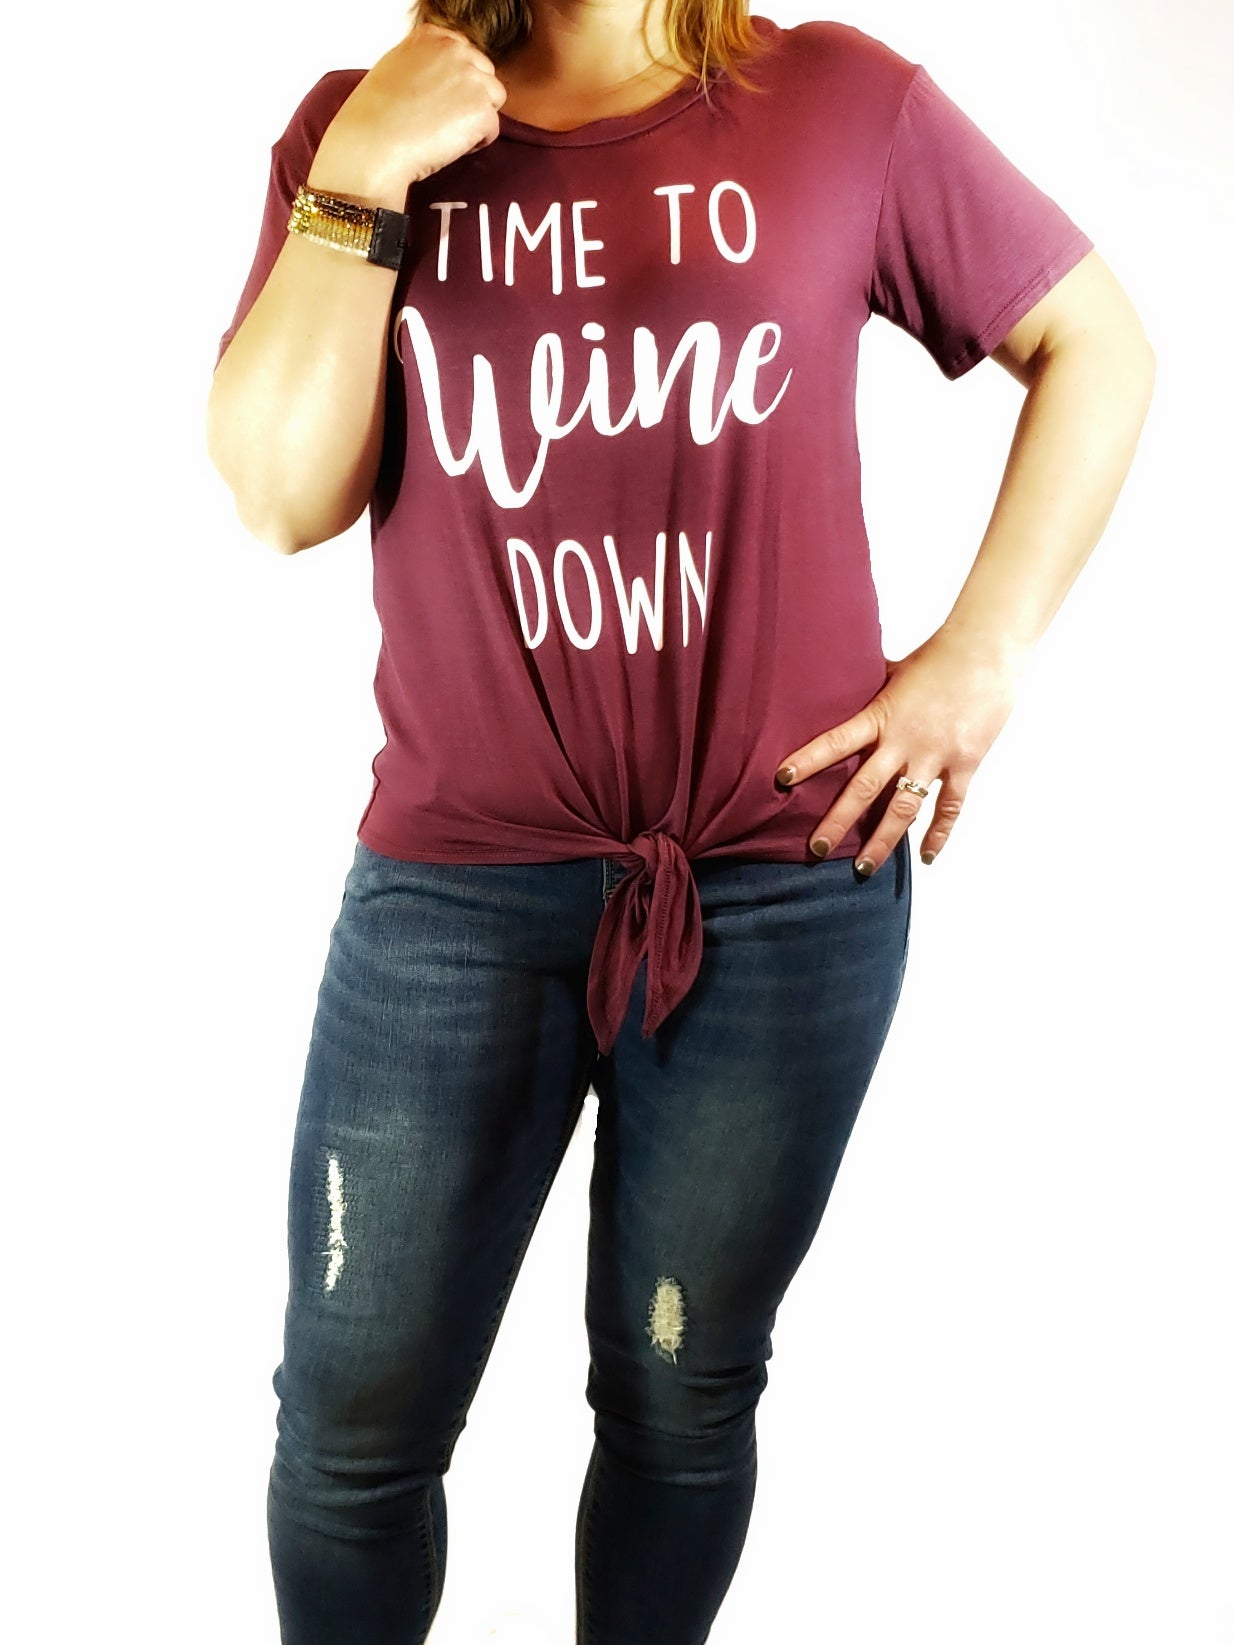 Time to Wine Down Graphic Tee - Multiple Colors Available